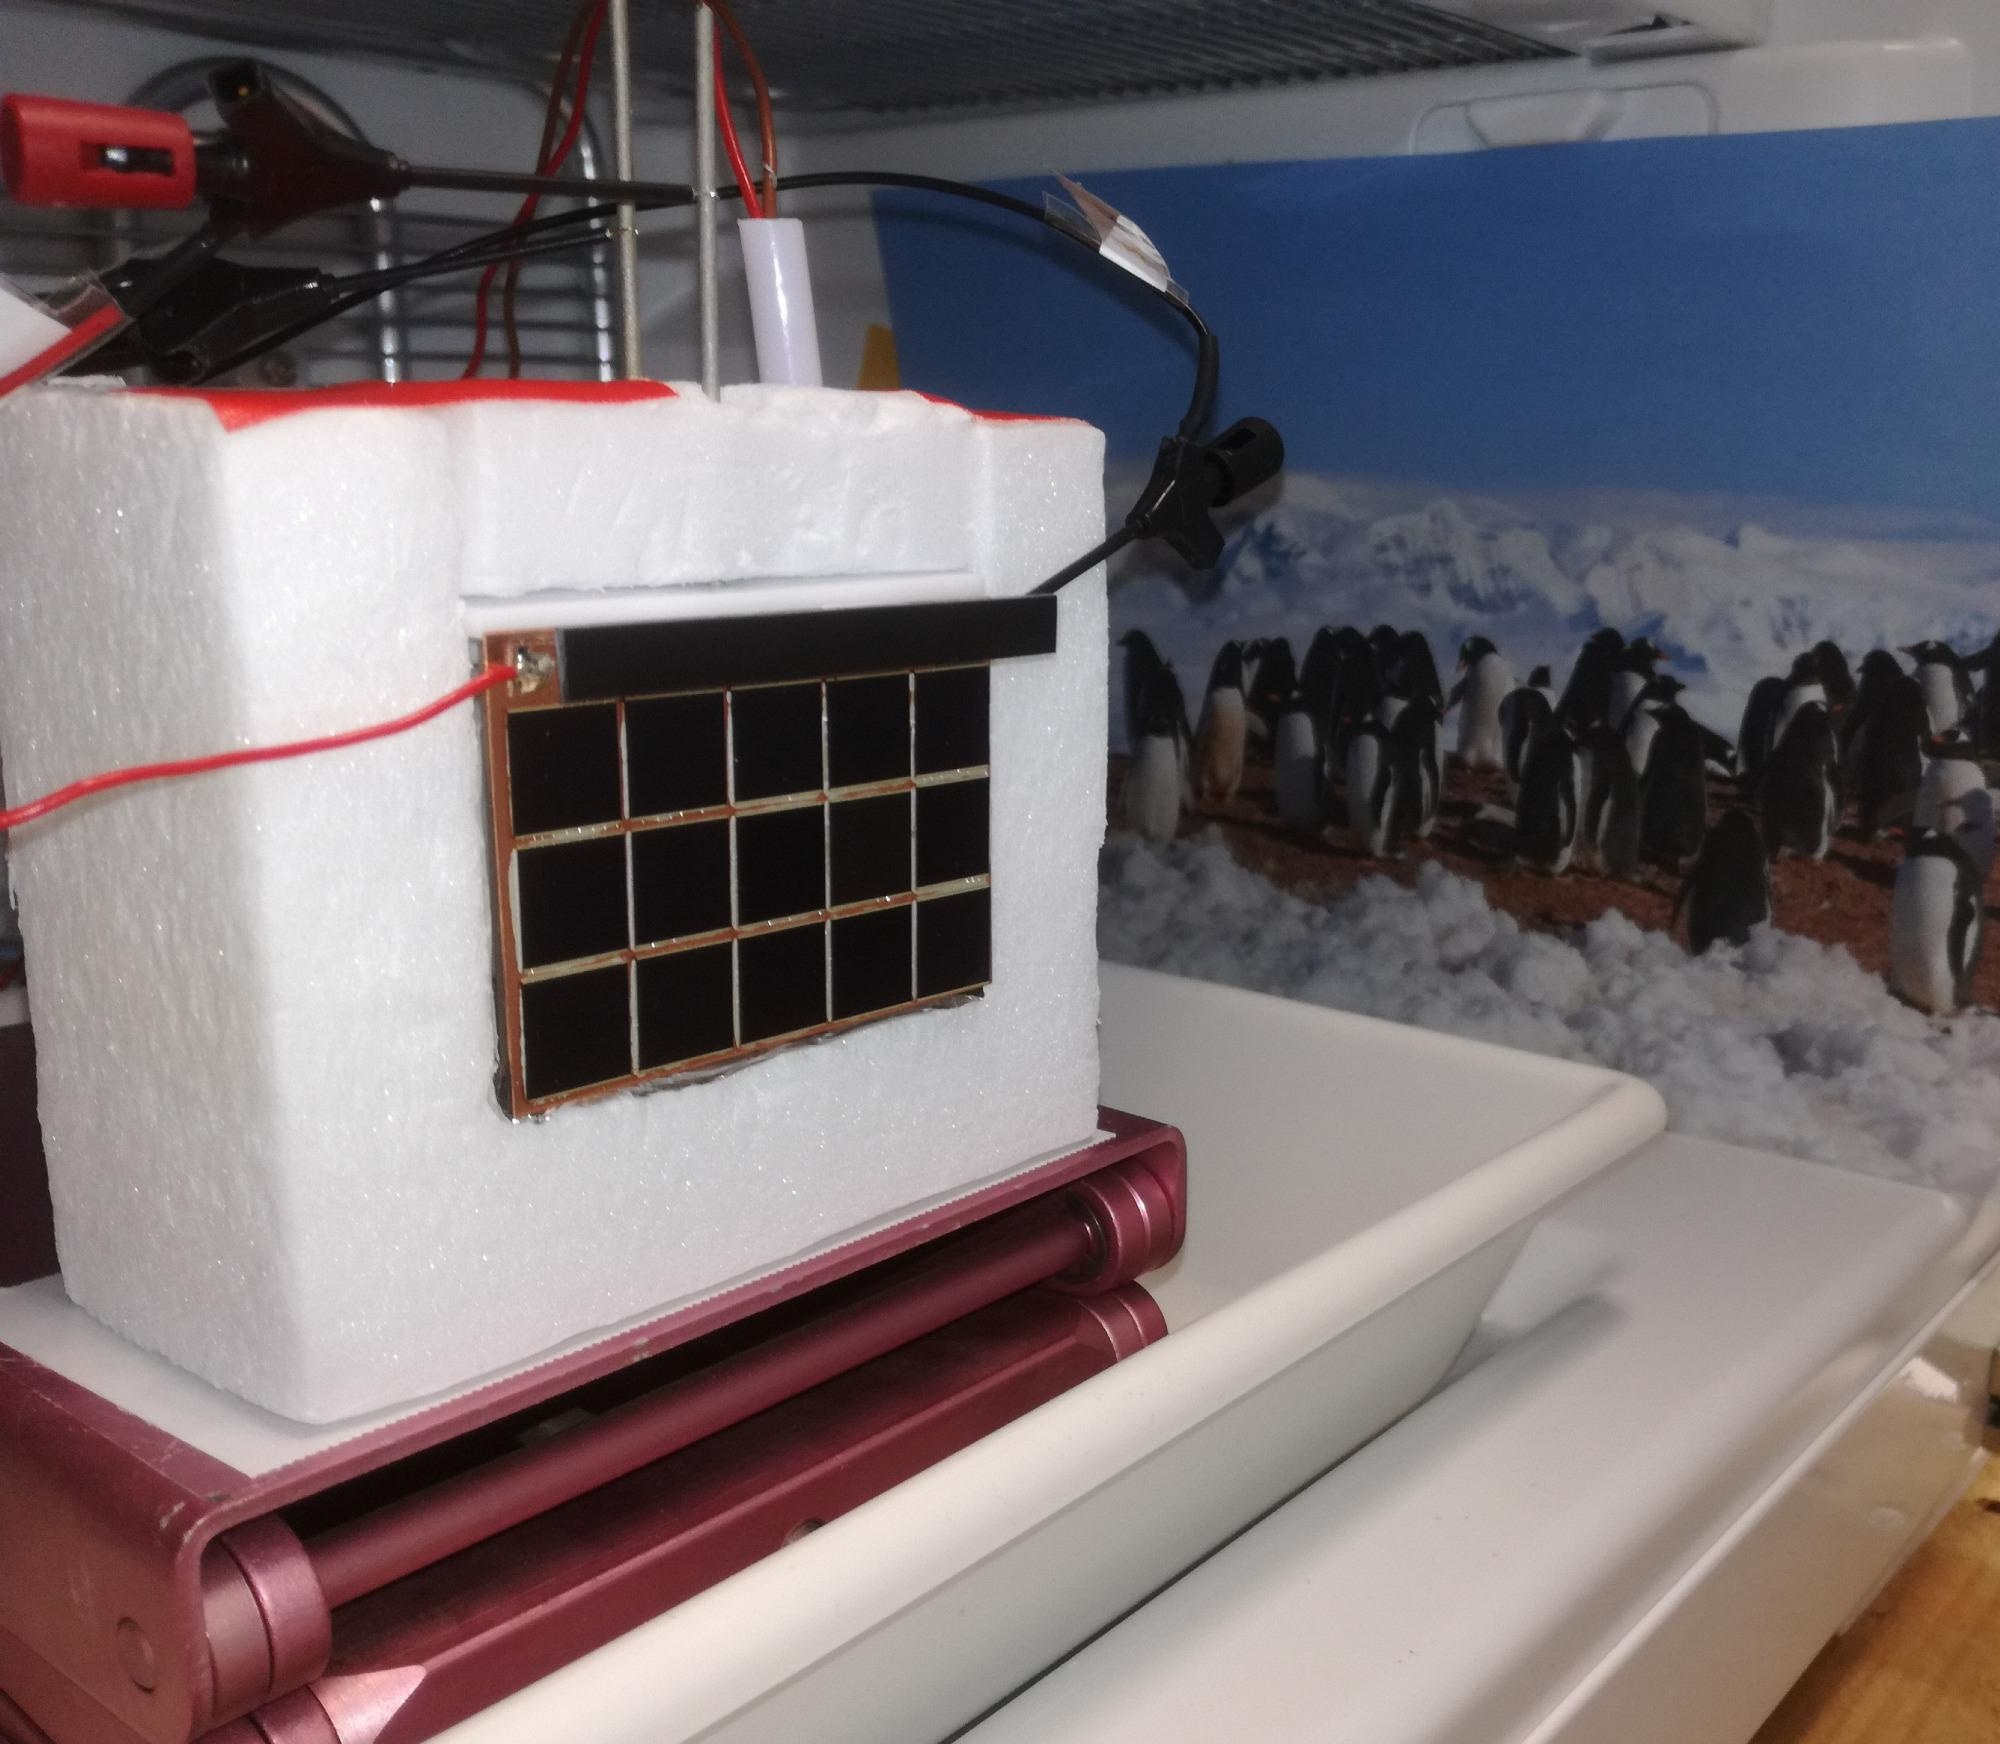 New Approach to Produce Hydrogen at the South Pole Using Sunlight.